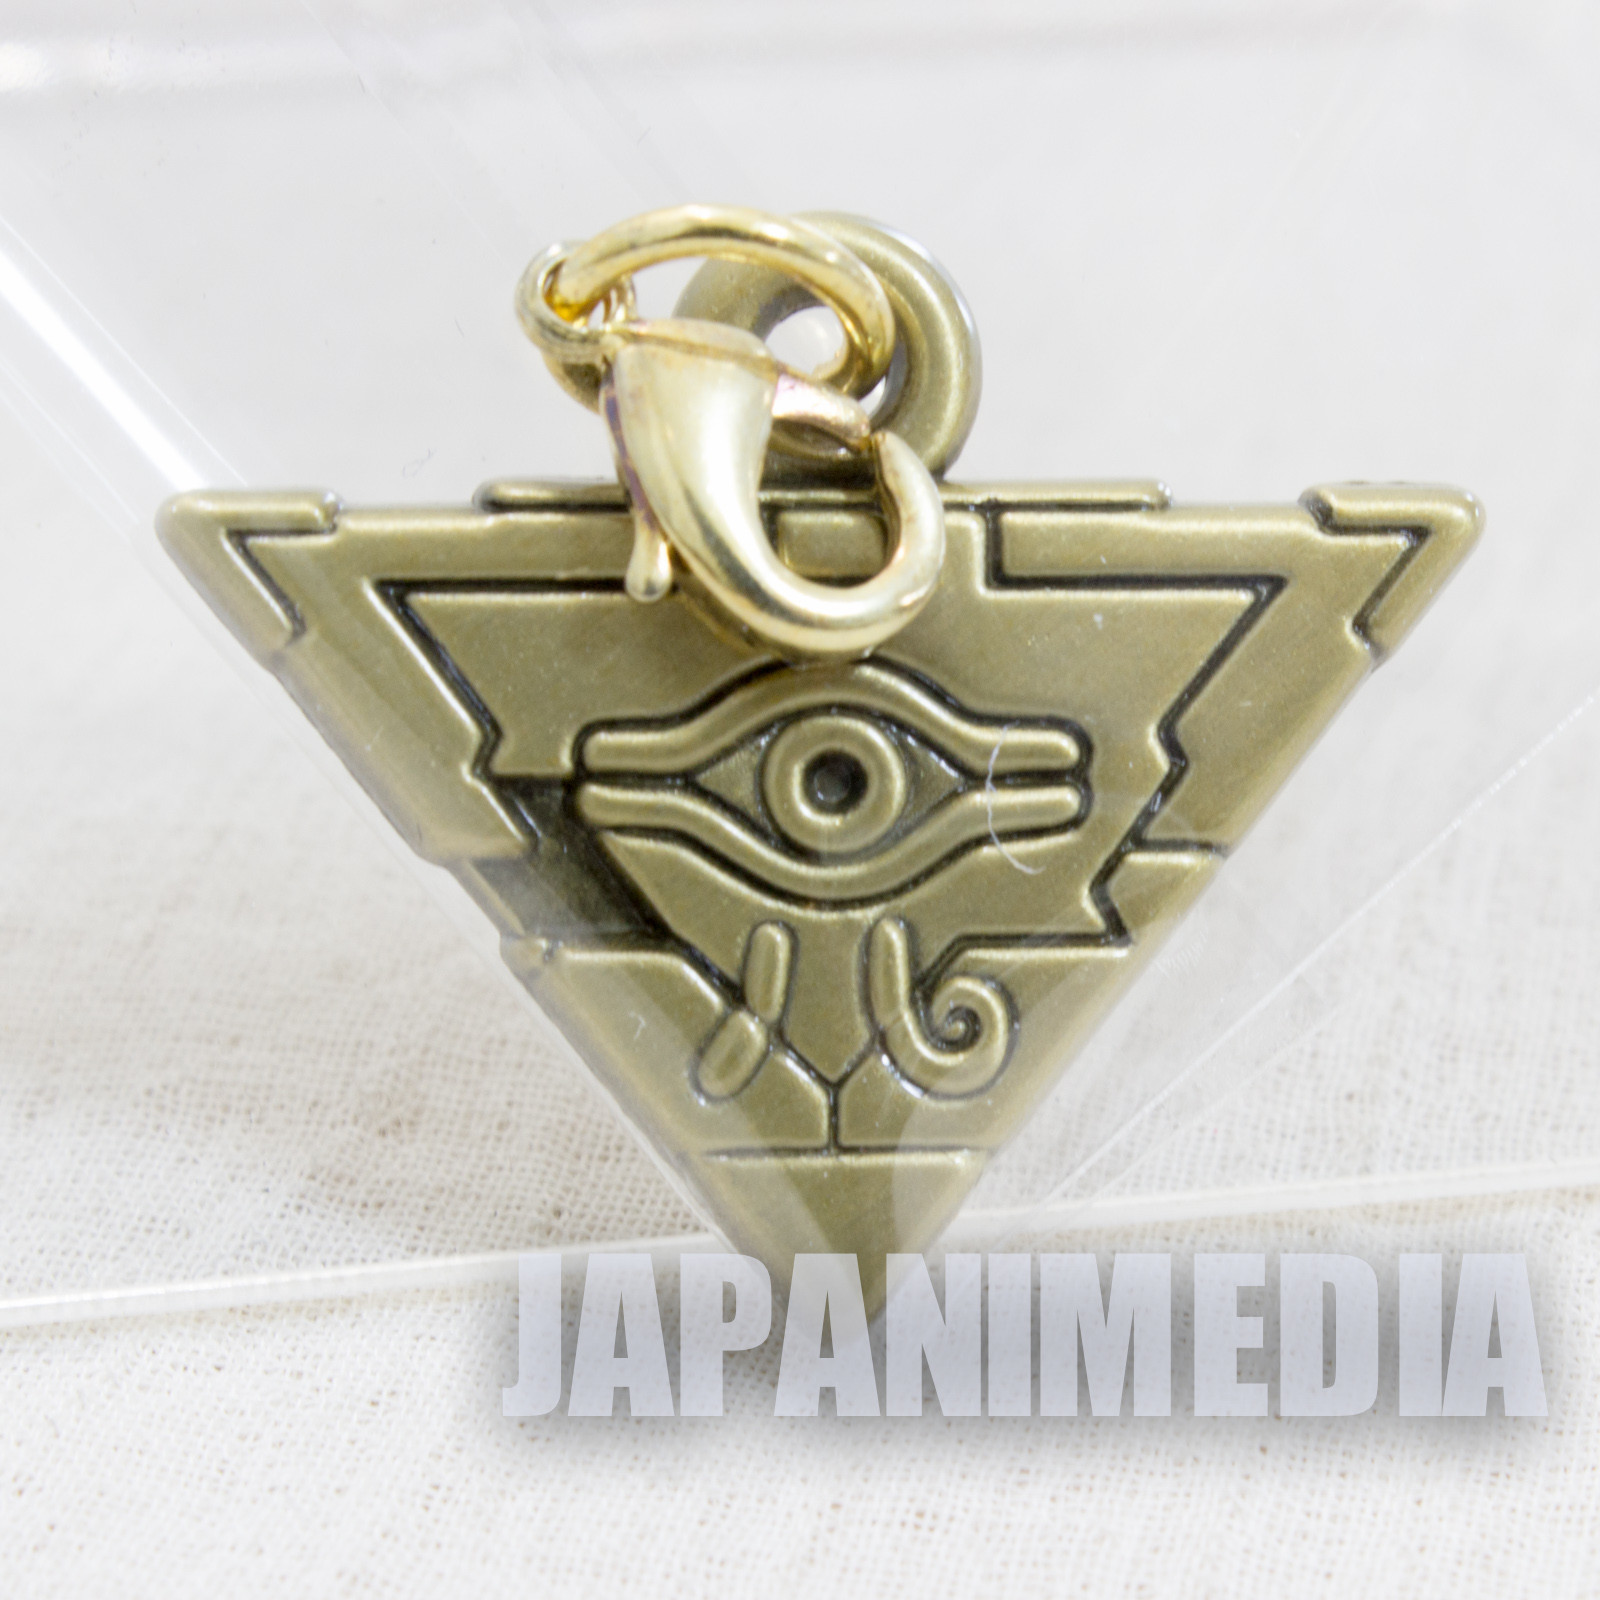 Yu-Gi-Oh! Millenium Puzzle 20th Millenium item Metal charm collection [1] JAPAN ANIME